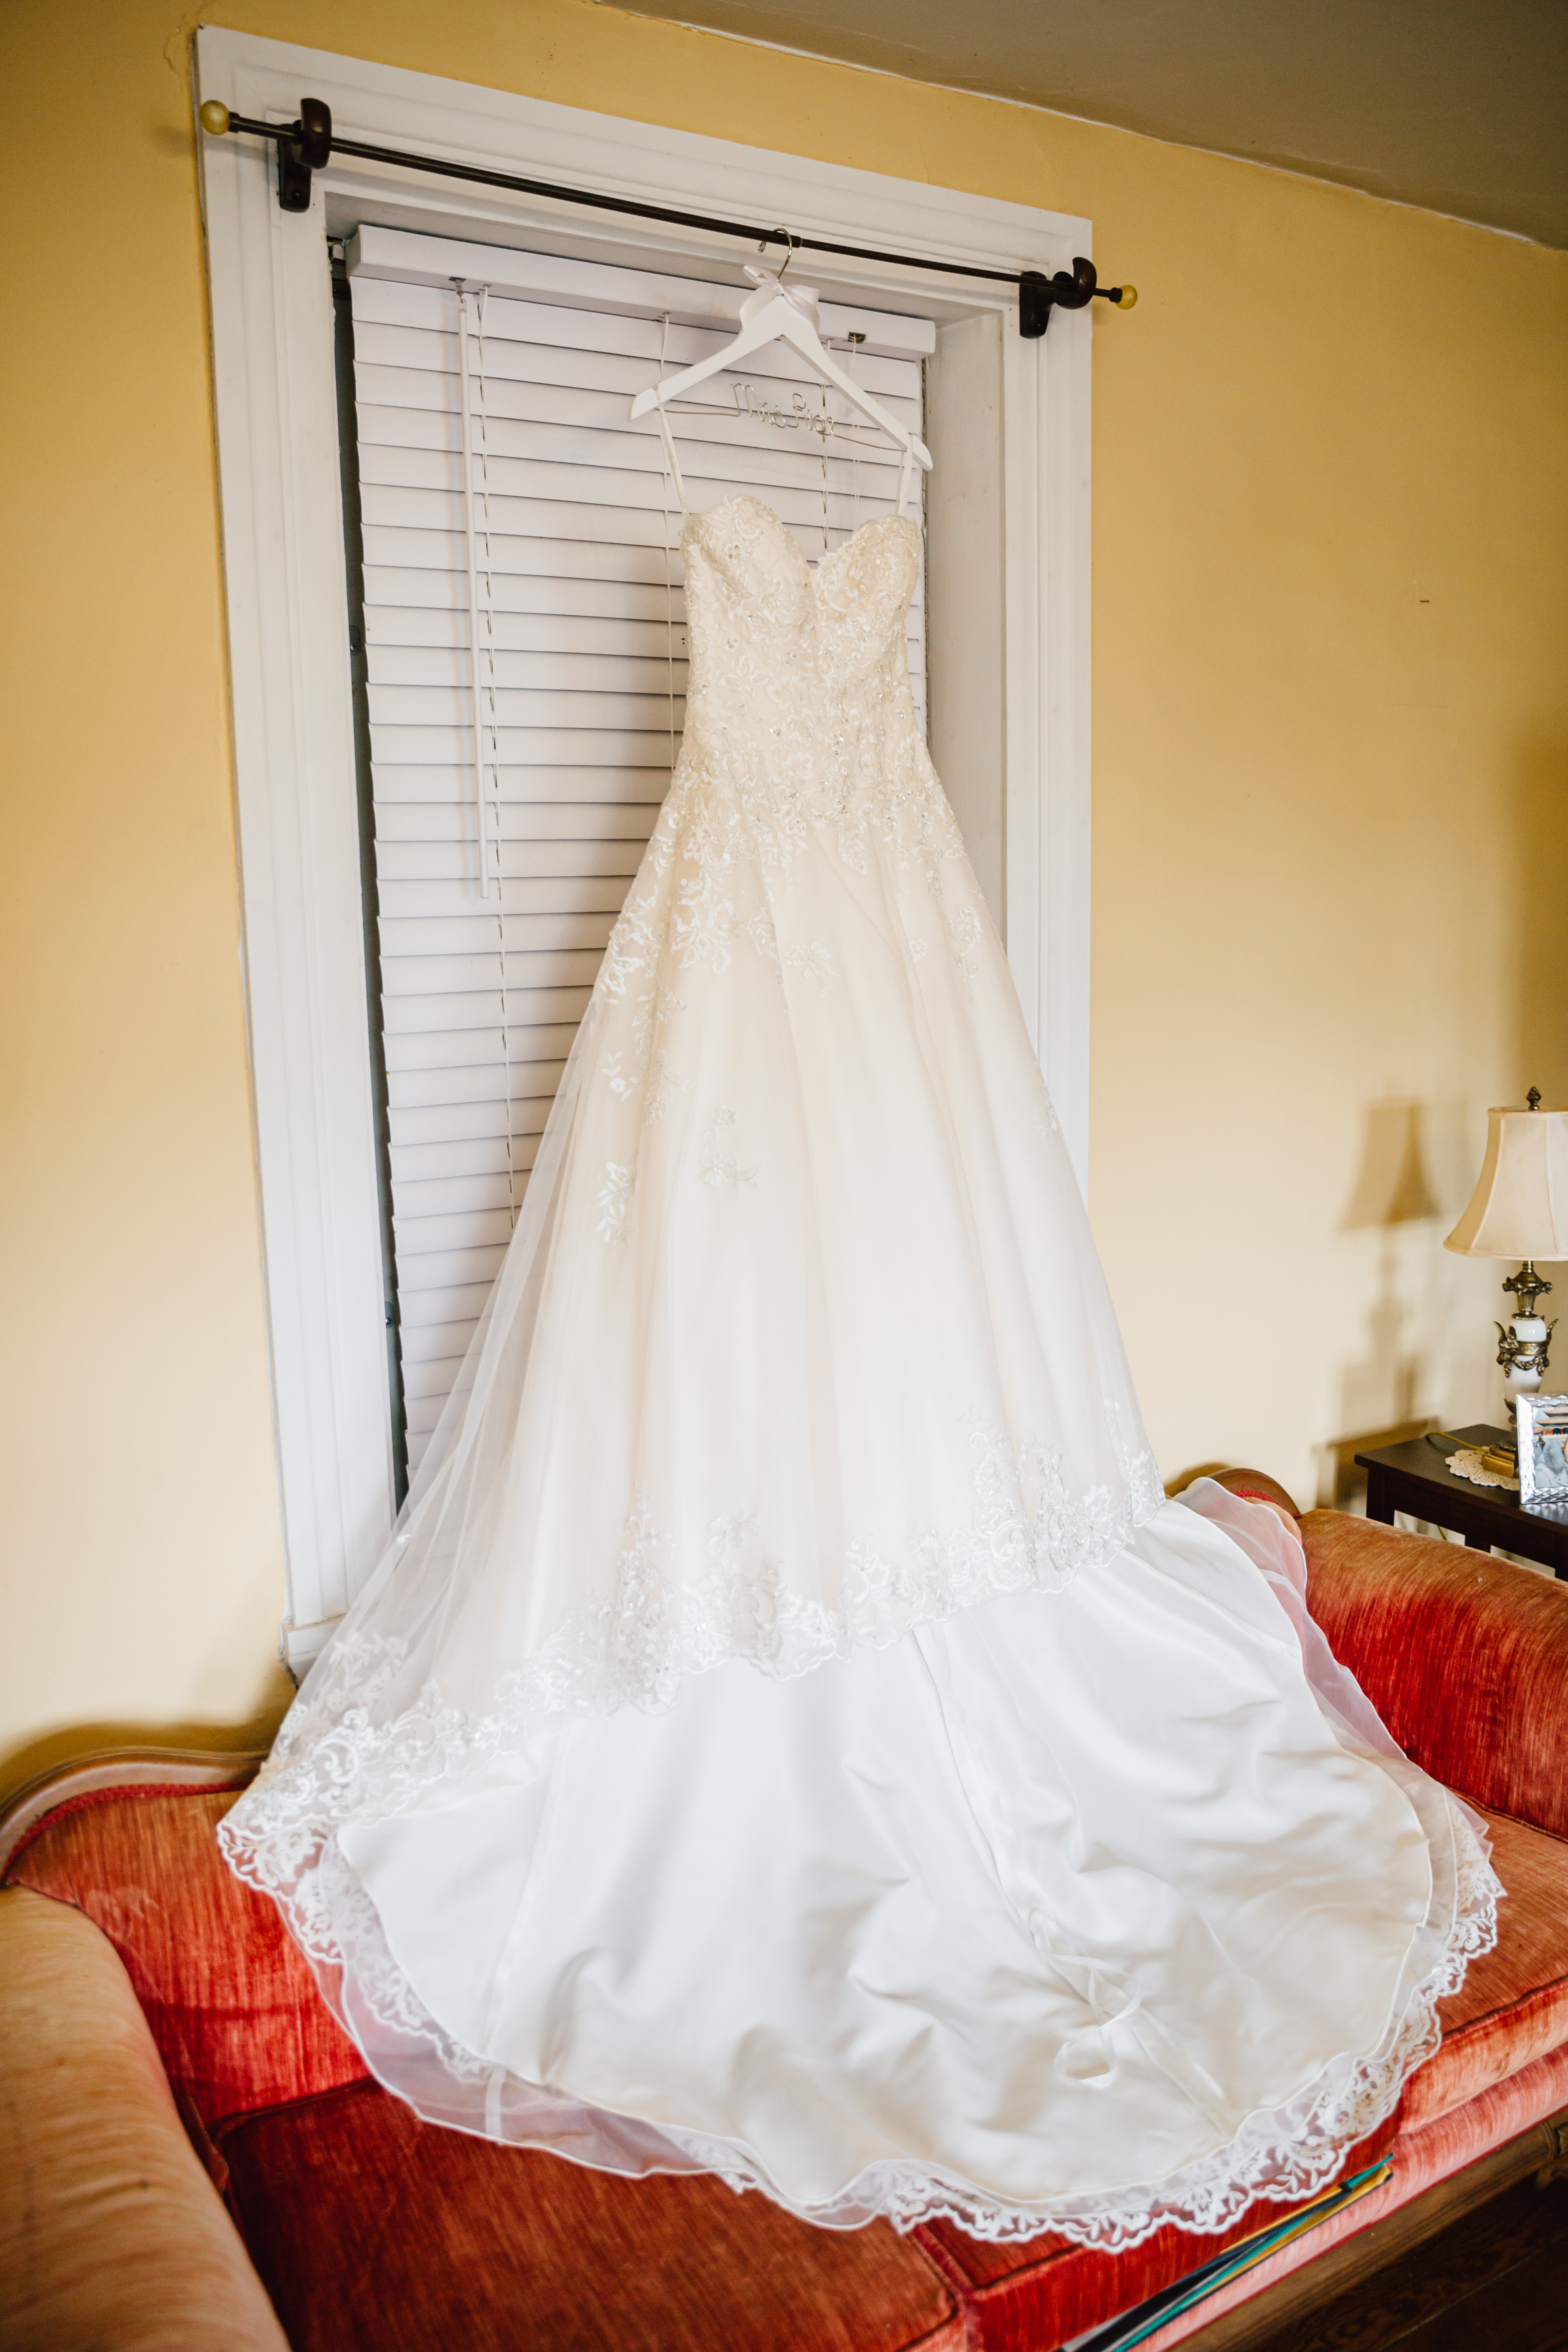 Jewel by David's Bridal - Strapless beaded lace ball gown wedding dress size 4 - $600 - (40% OFF)